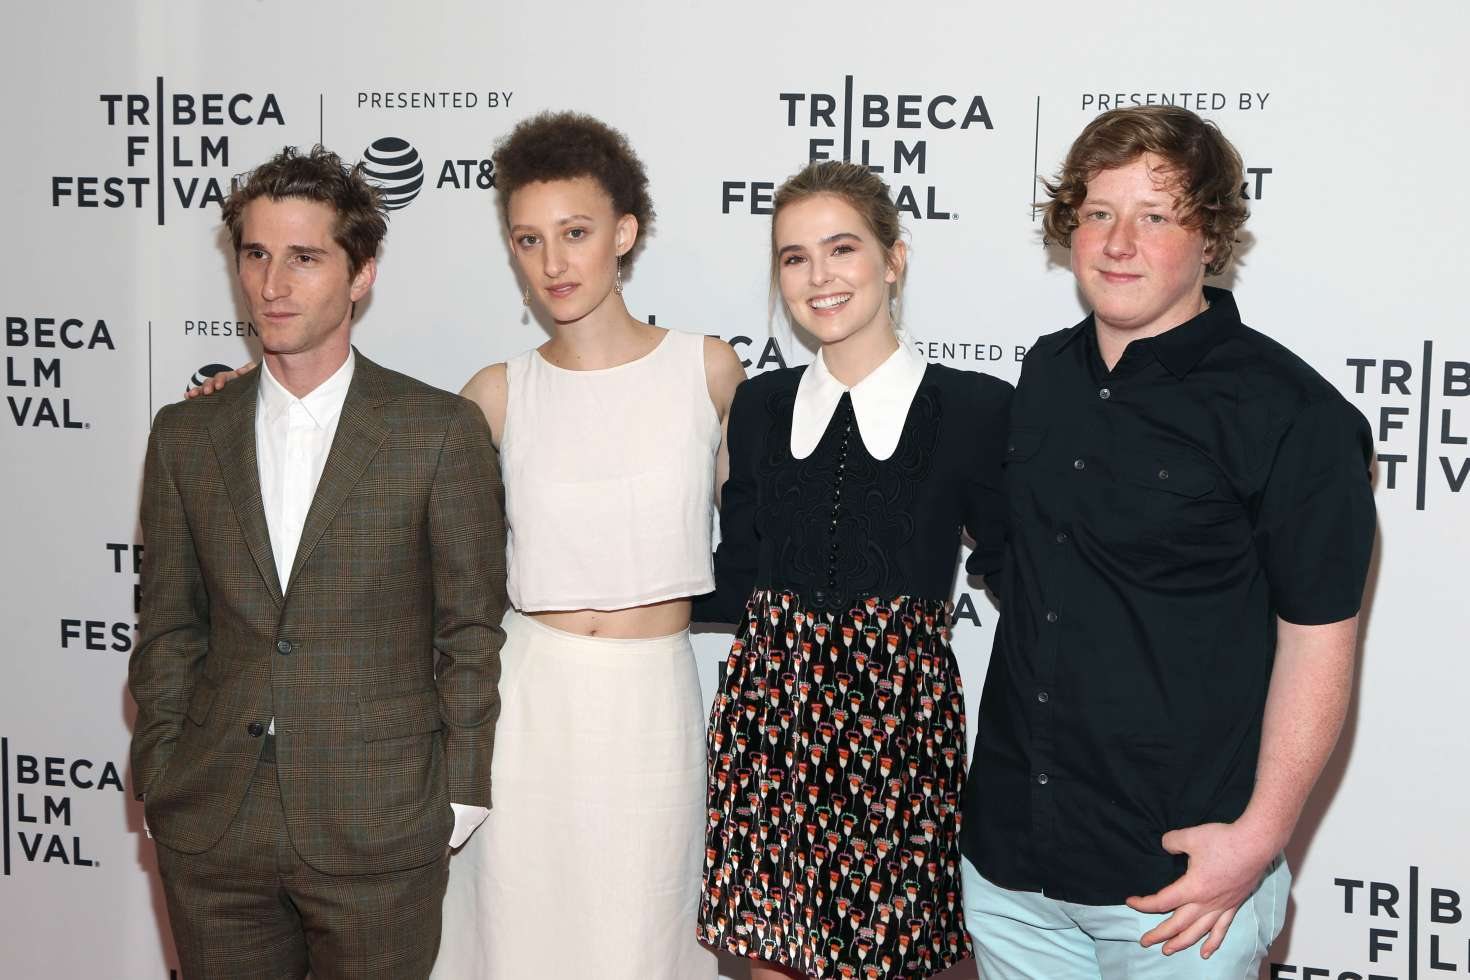 Zoey Deutch  'Flower' screening at 2017 Tribeca Film Festival in New York   Zoey-Deutch--Flower-screening-at-2017-Tribeca-Film-Festival-in-New-York-01